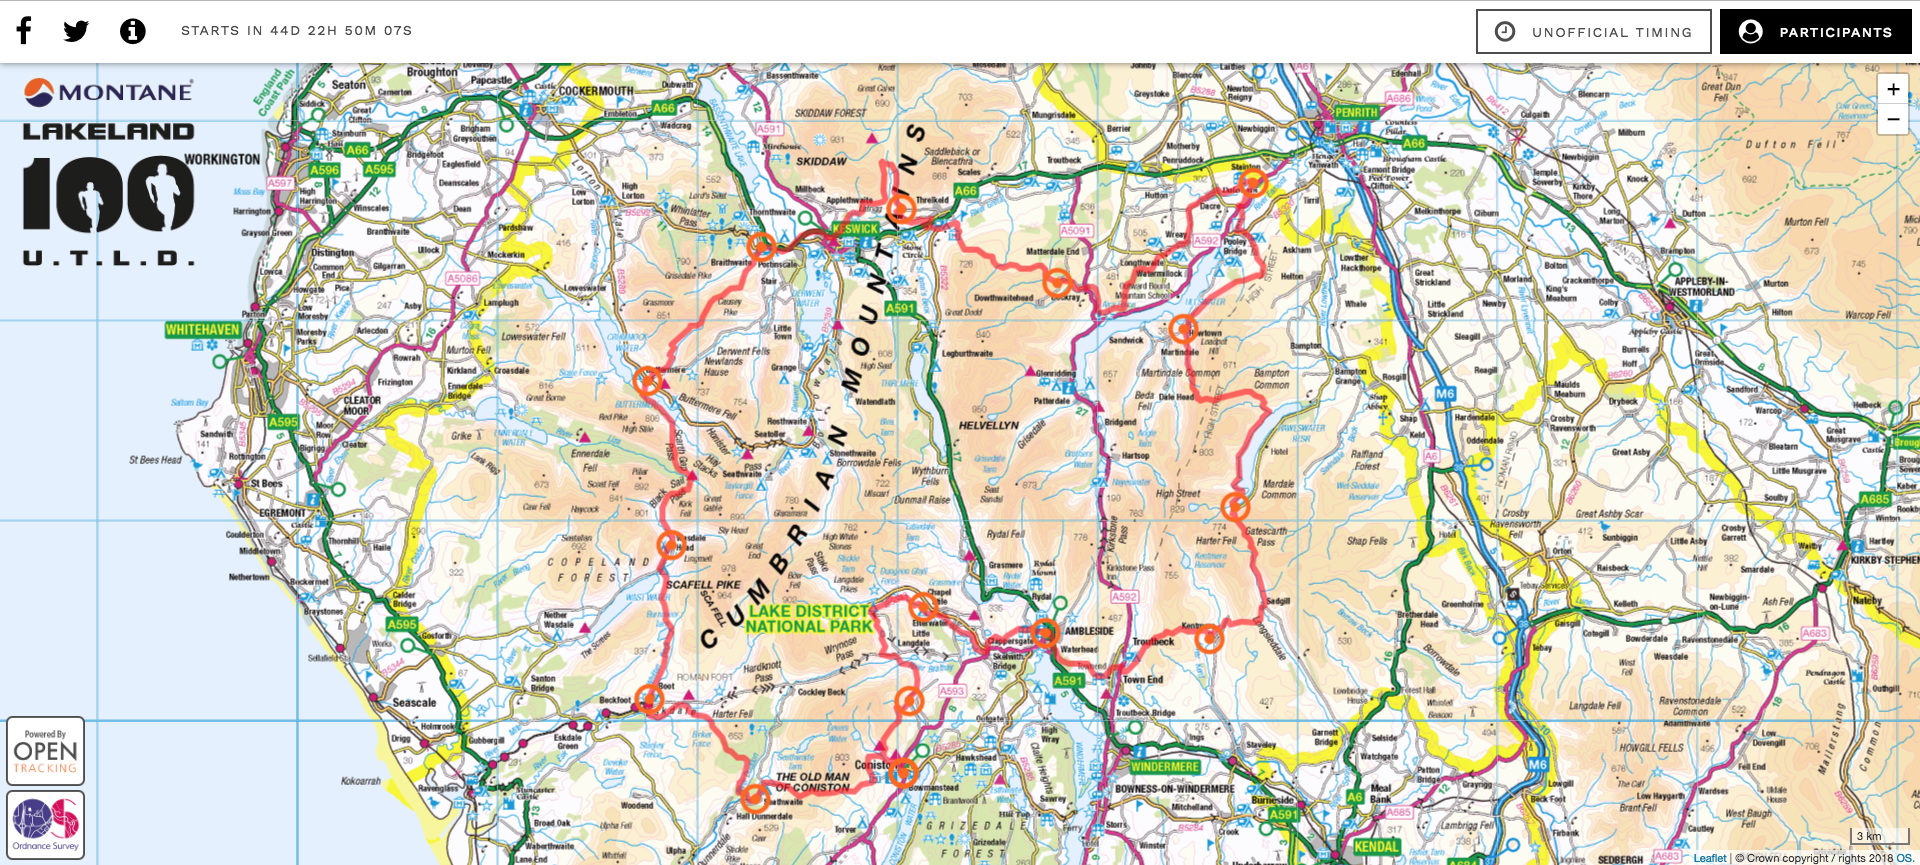 Lakeland 100 and Lakeland 50 tracking page